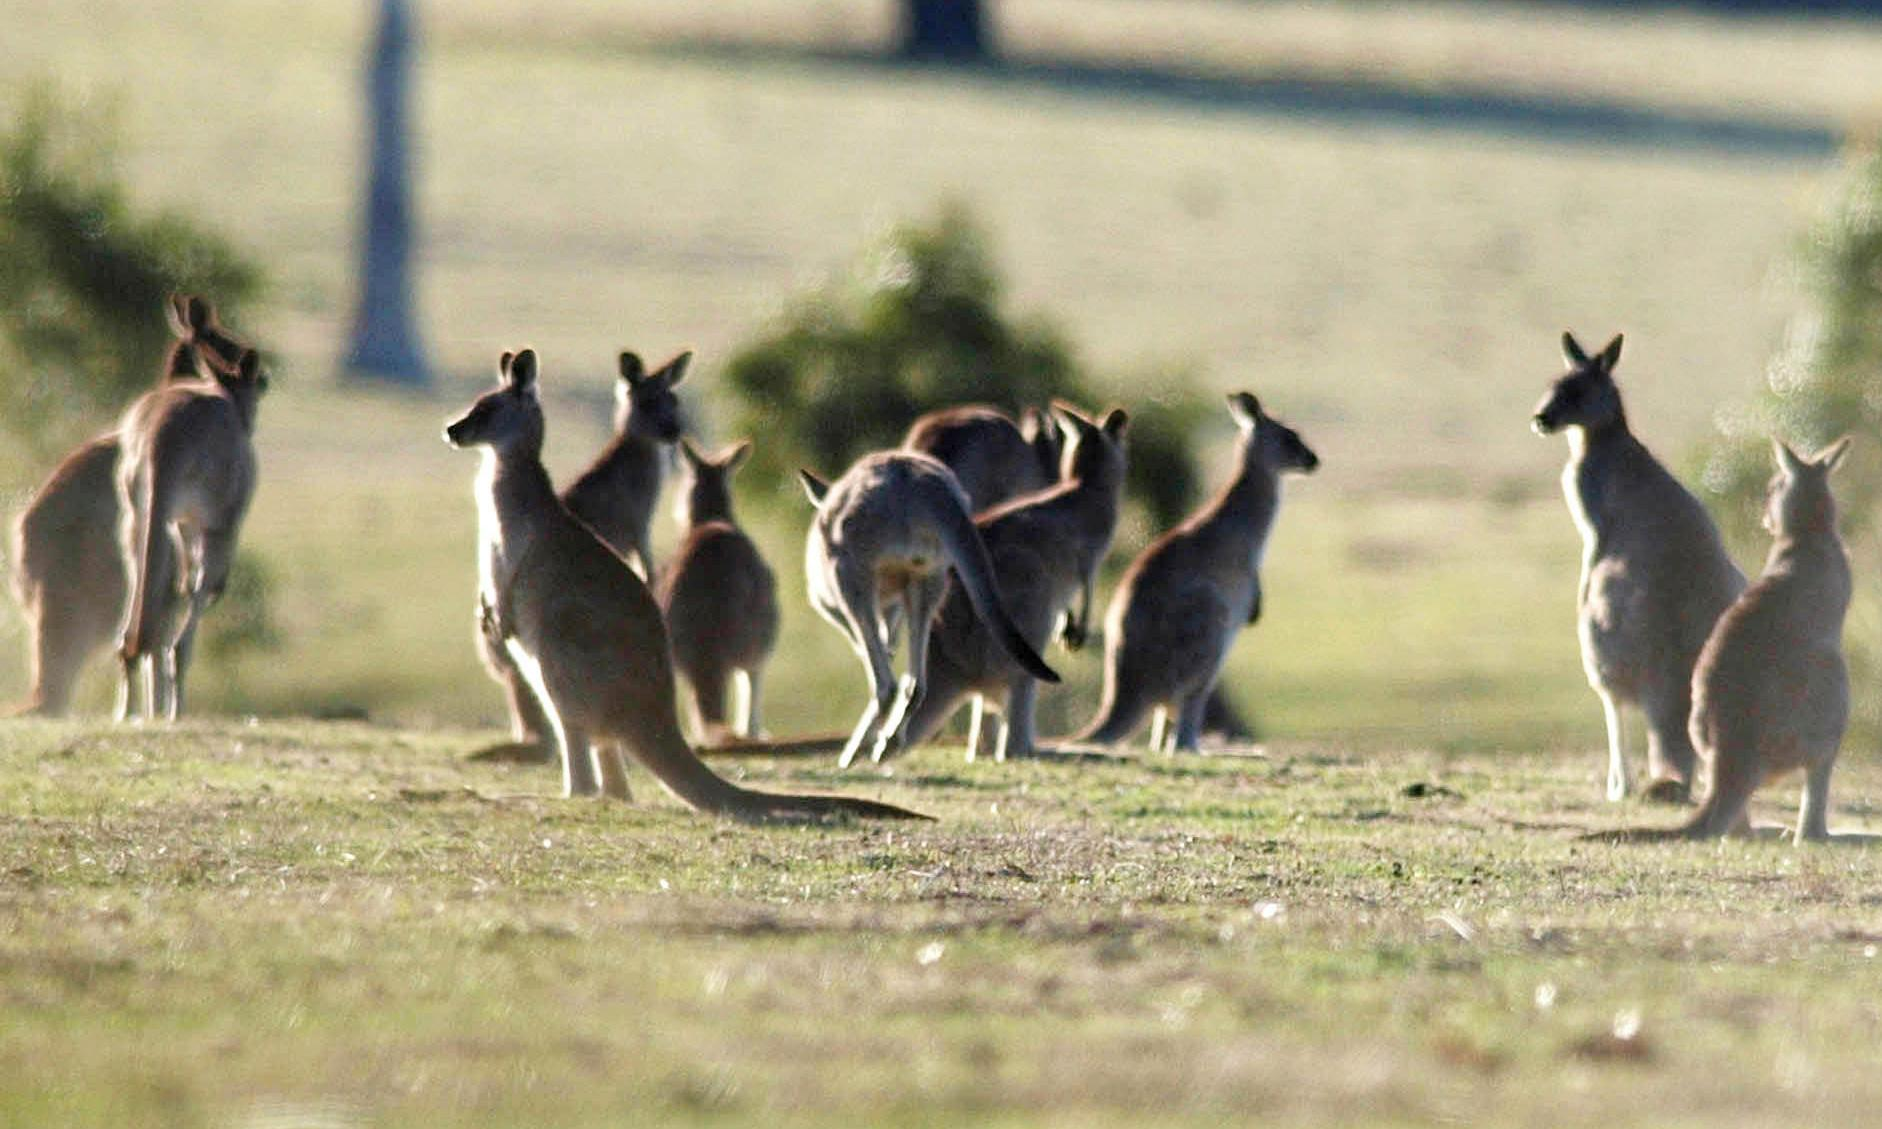 Australia's kangaroo meat trade could be the most sustainable in the world, despite welfare concerns